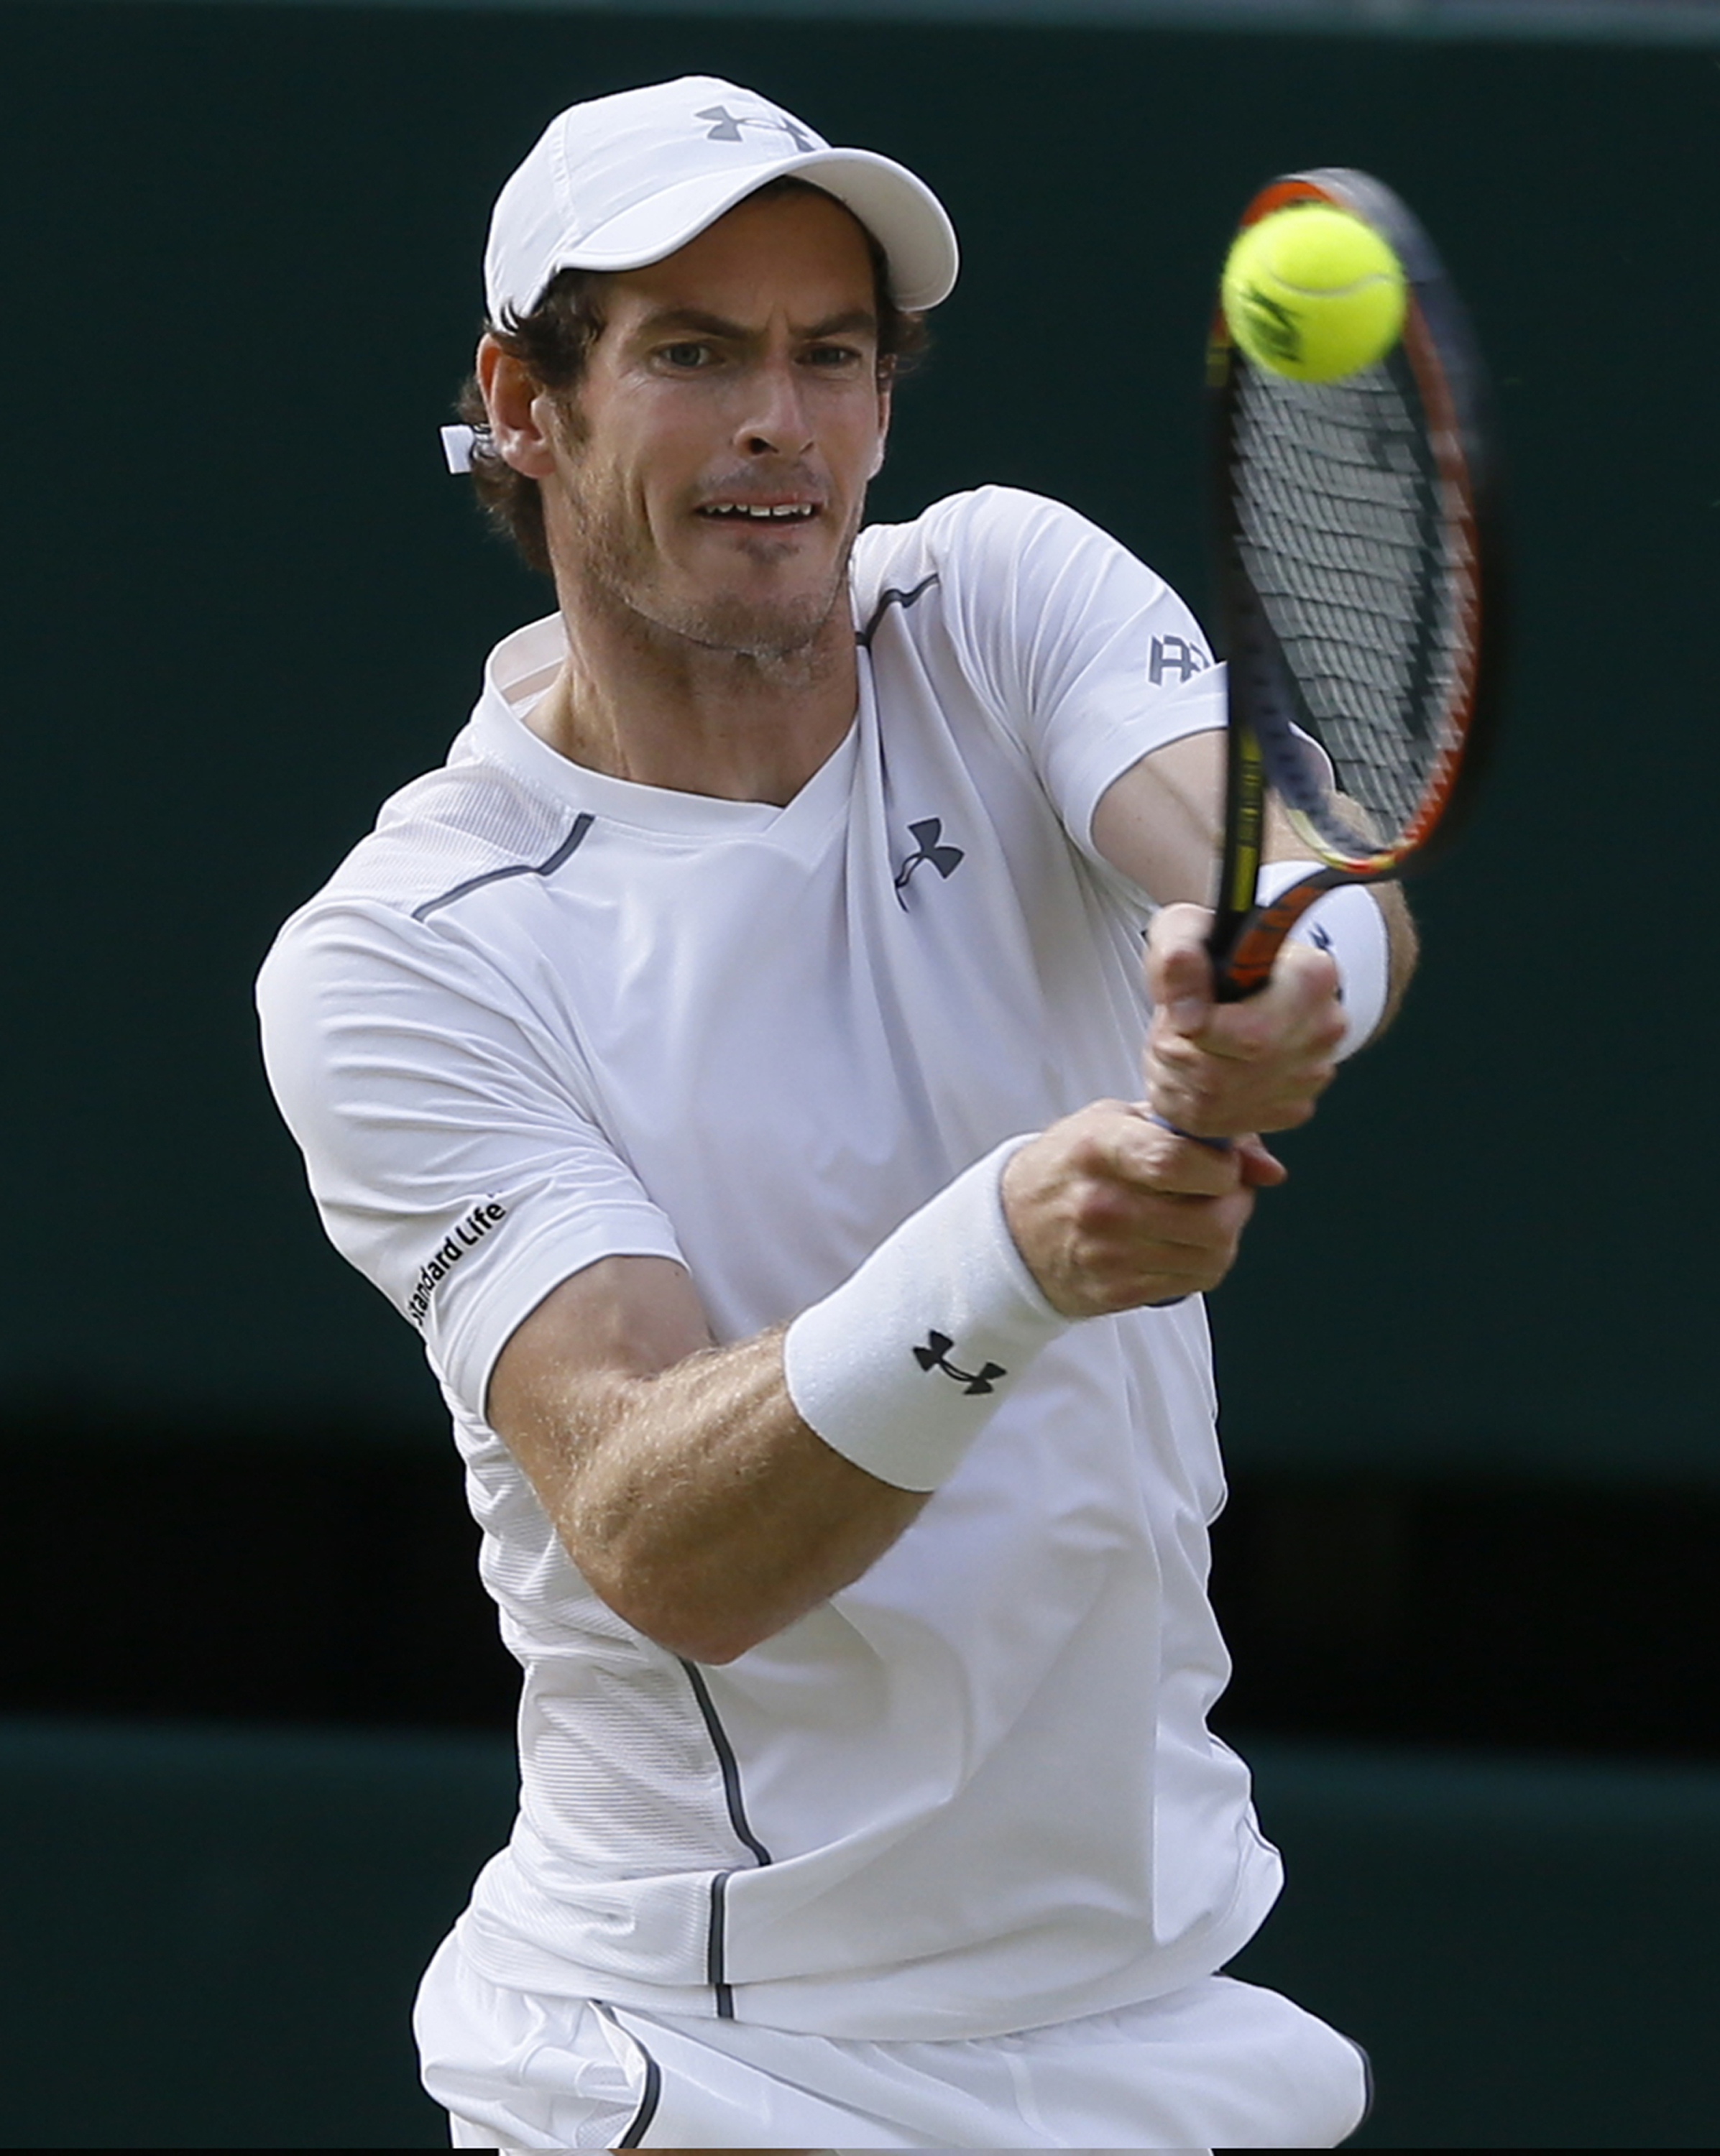 Andy Murray of Britain plays a shot to Roger Federer of Switzerland during the men's singles semifinal match at the All England Lawn Tennis Championships in Wimbledon, London, Friday July 10, 2015. (AP Photo/Kirsty Wigglesworth)